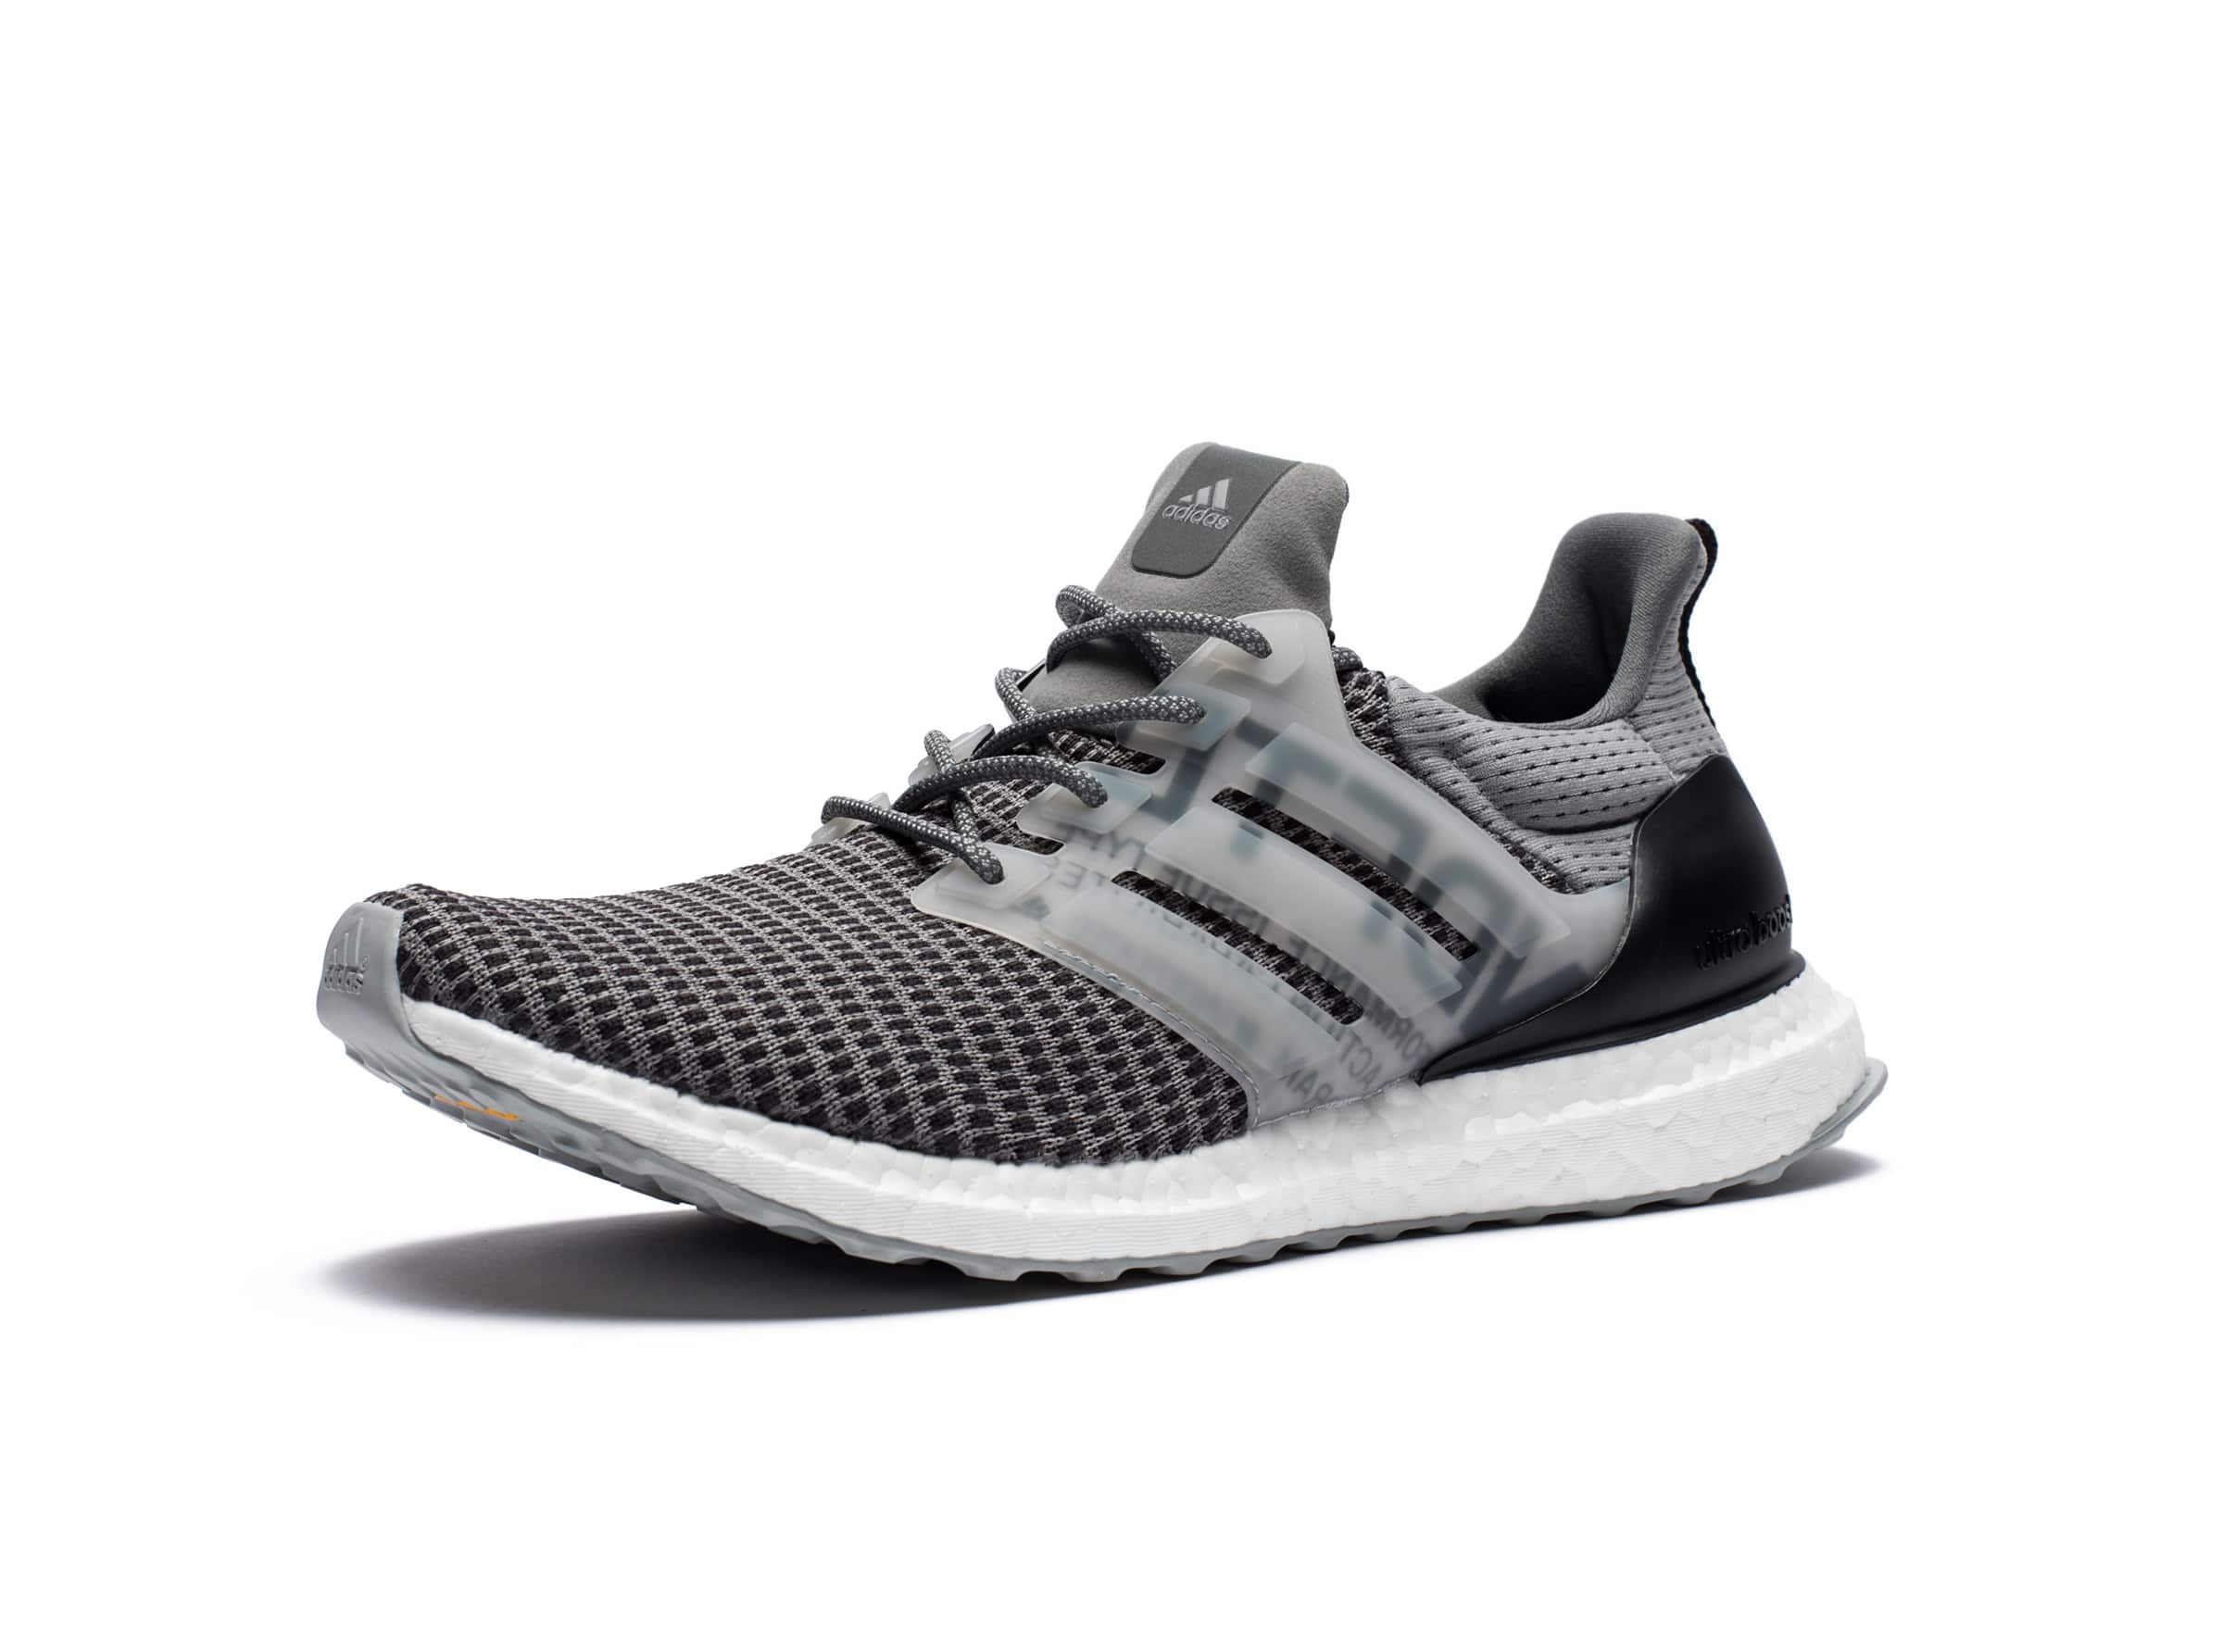 be7370772 ADIDAS X UNDEFEATED ULTRABOOST - CLEARONIX